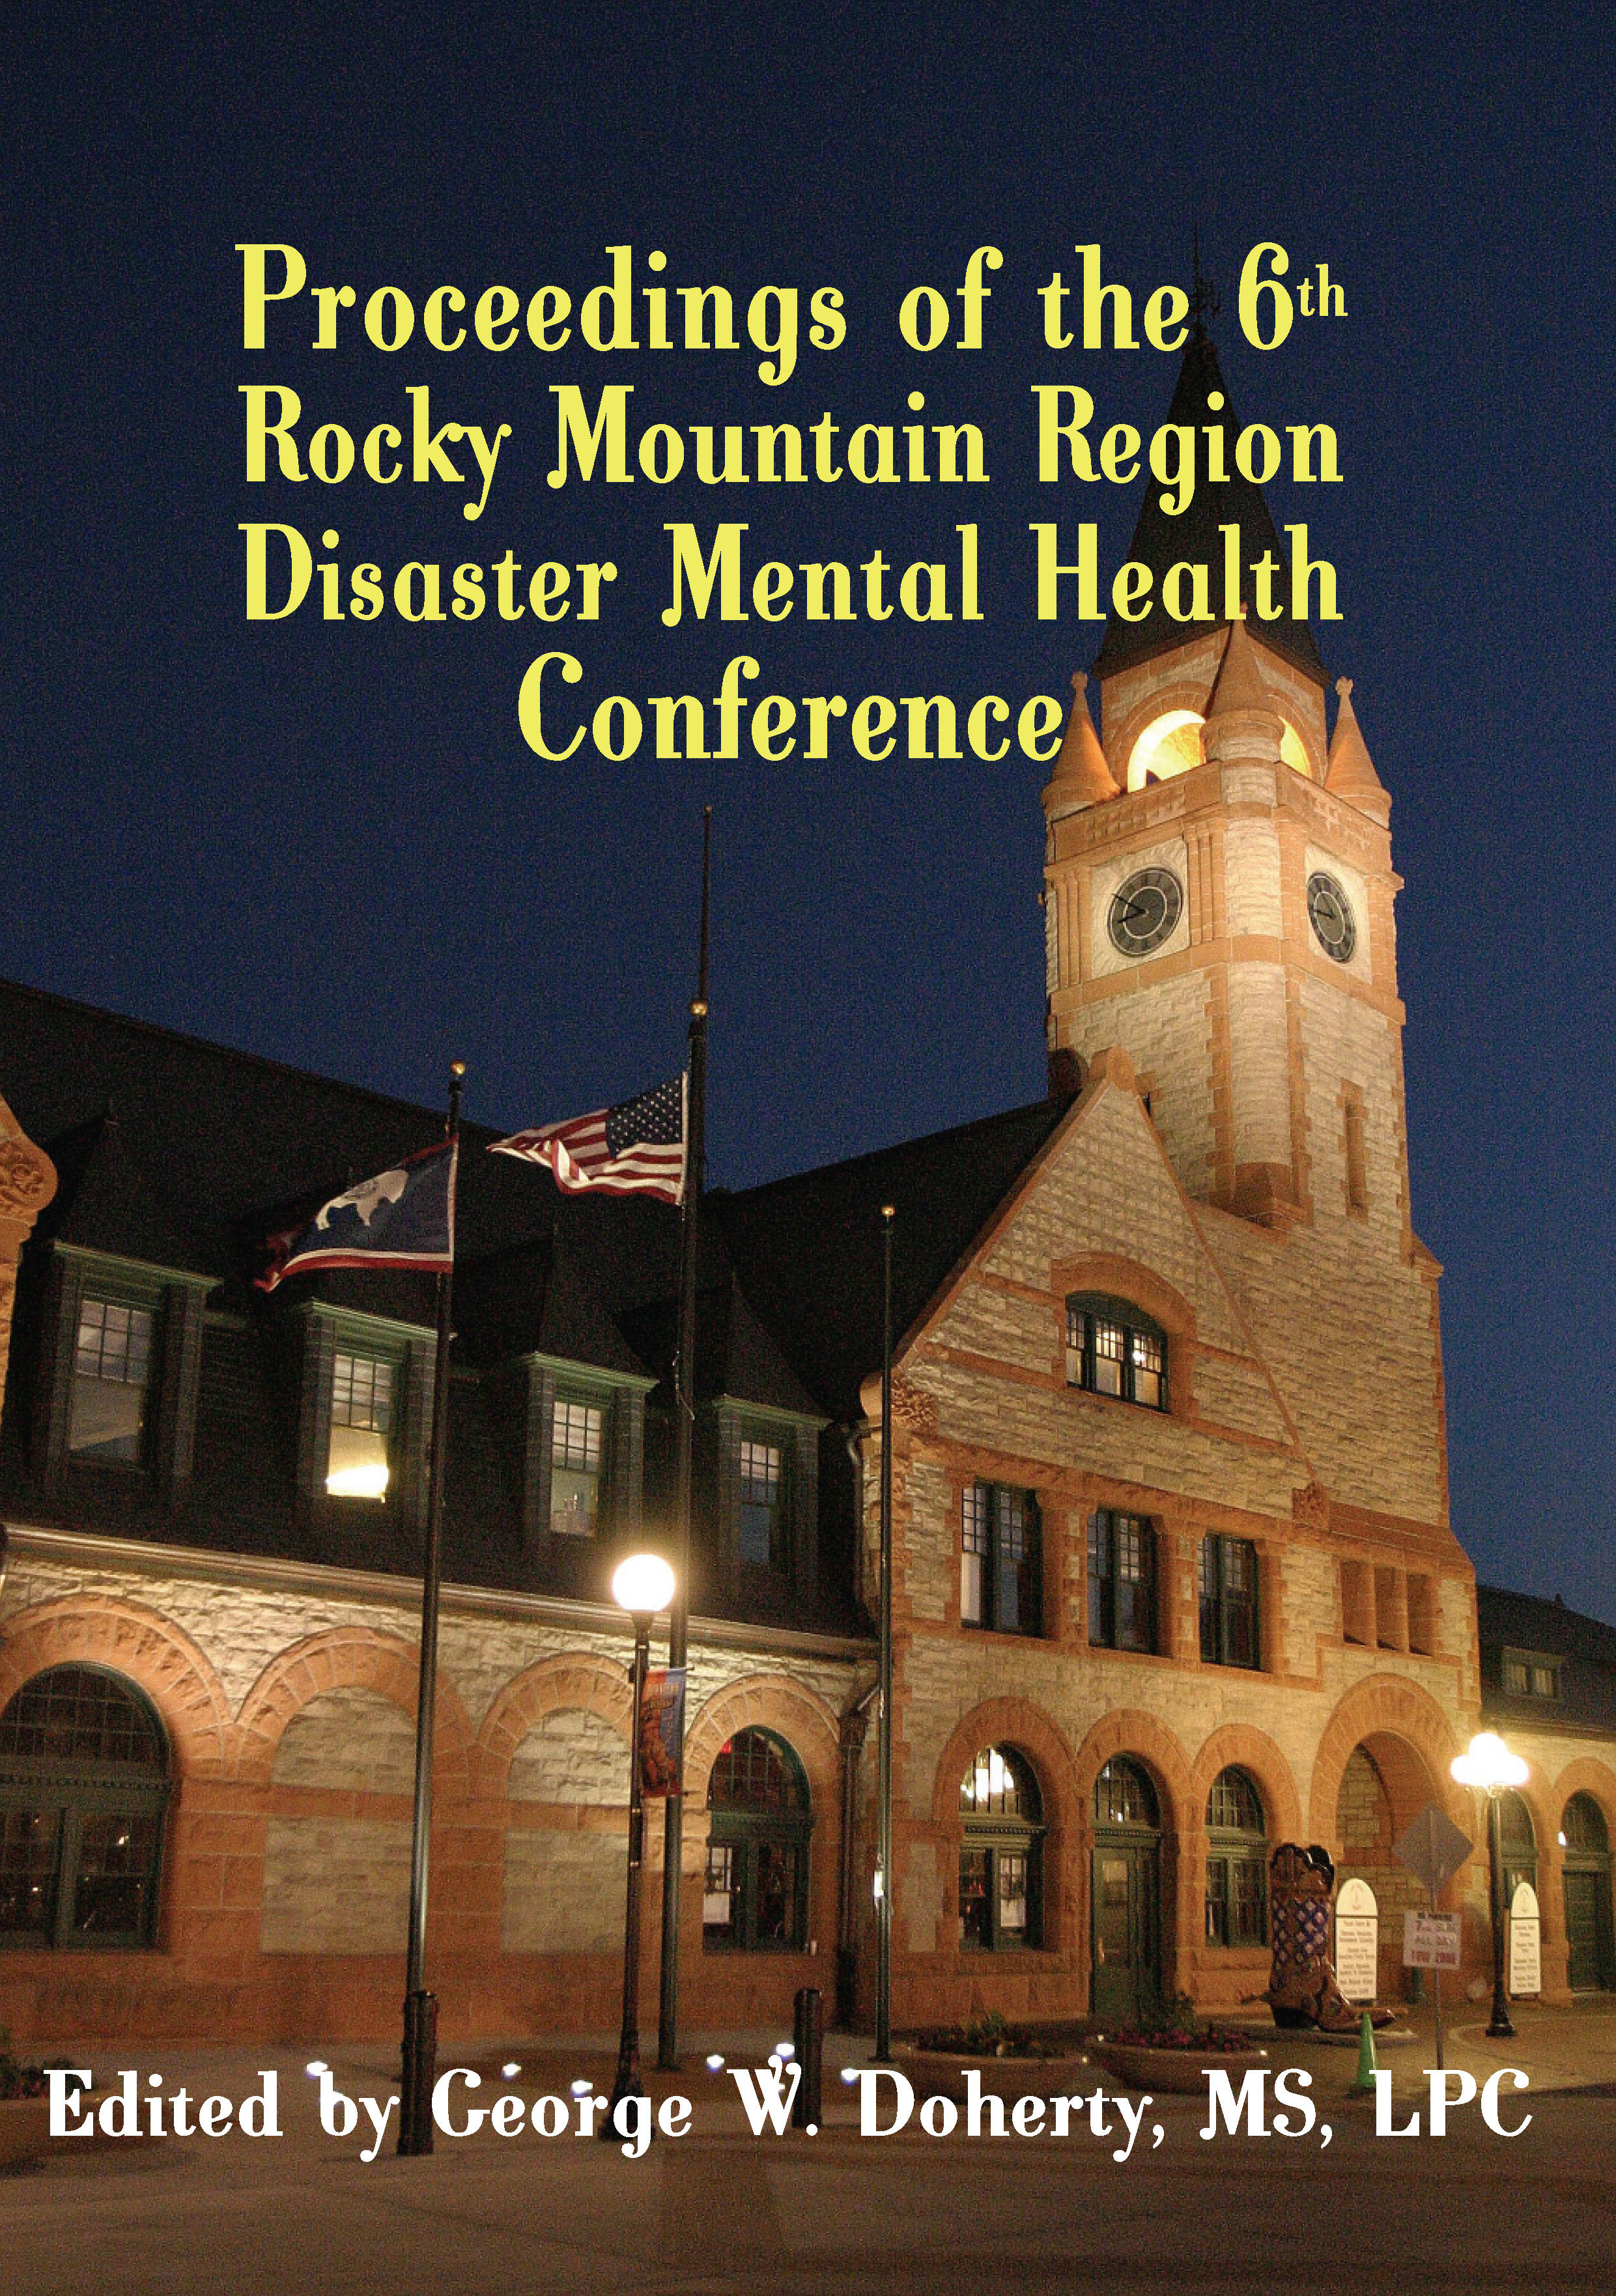 From Crisis to Recovery: Proceedings of the 6th Annual Rocky Mountain Disaster Mental Health Conference 978-1-932690-56-9